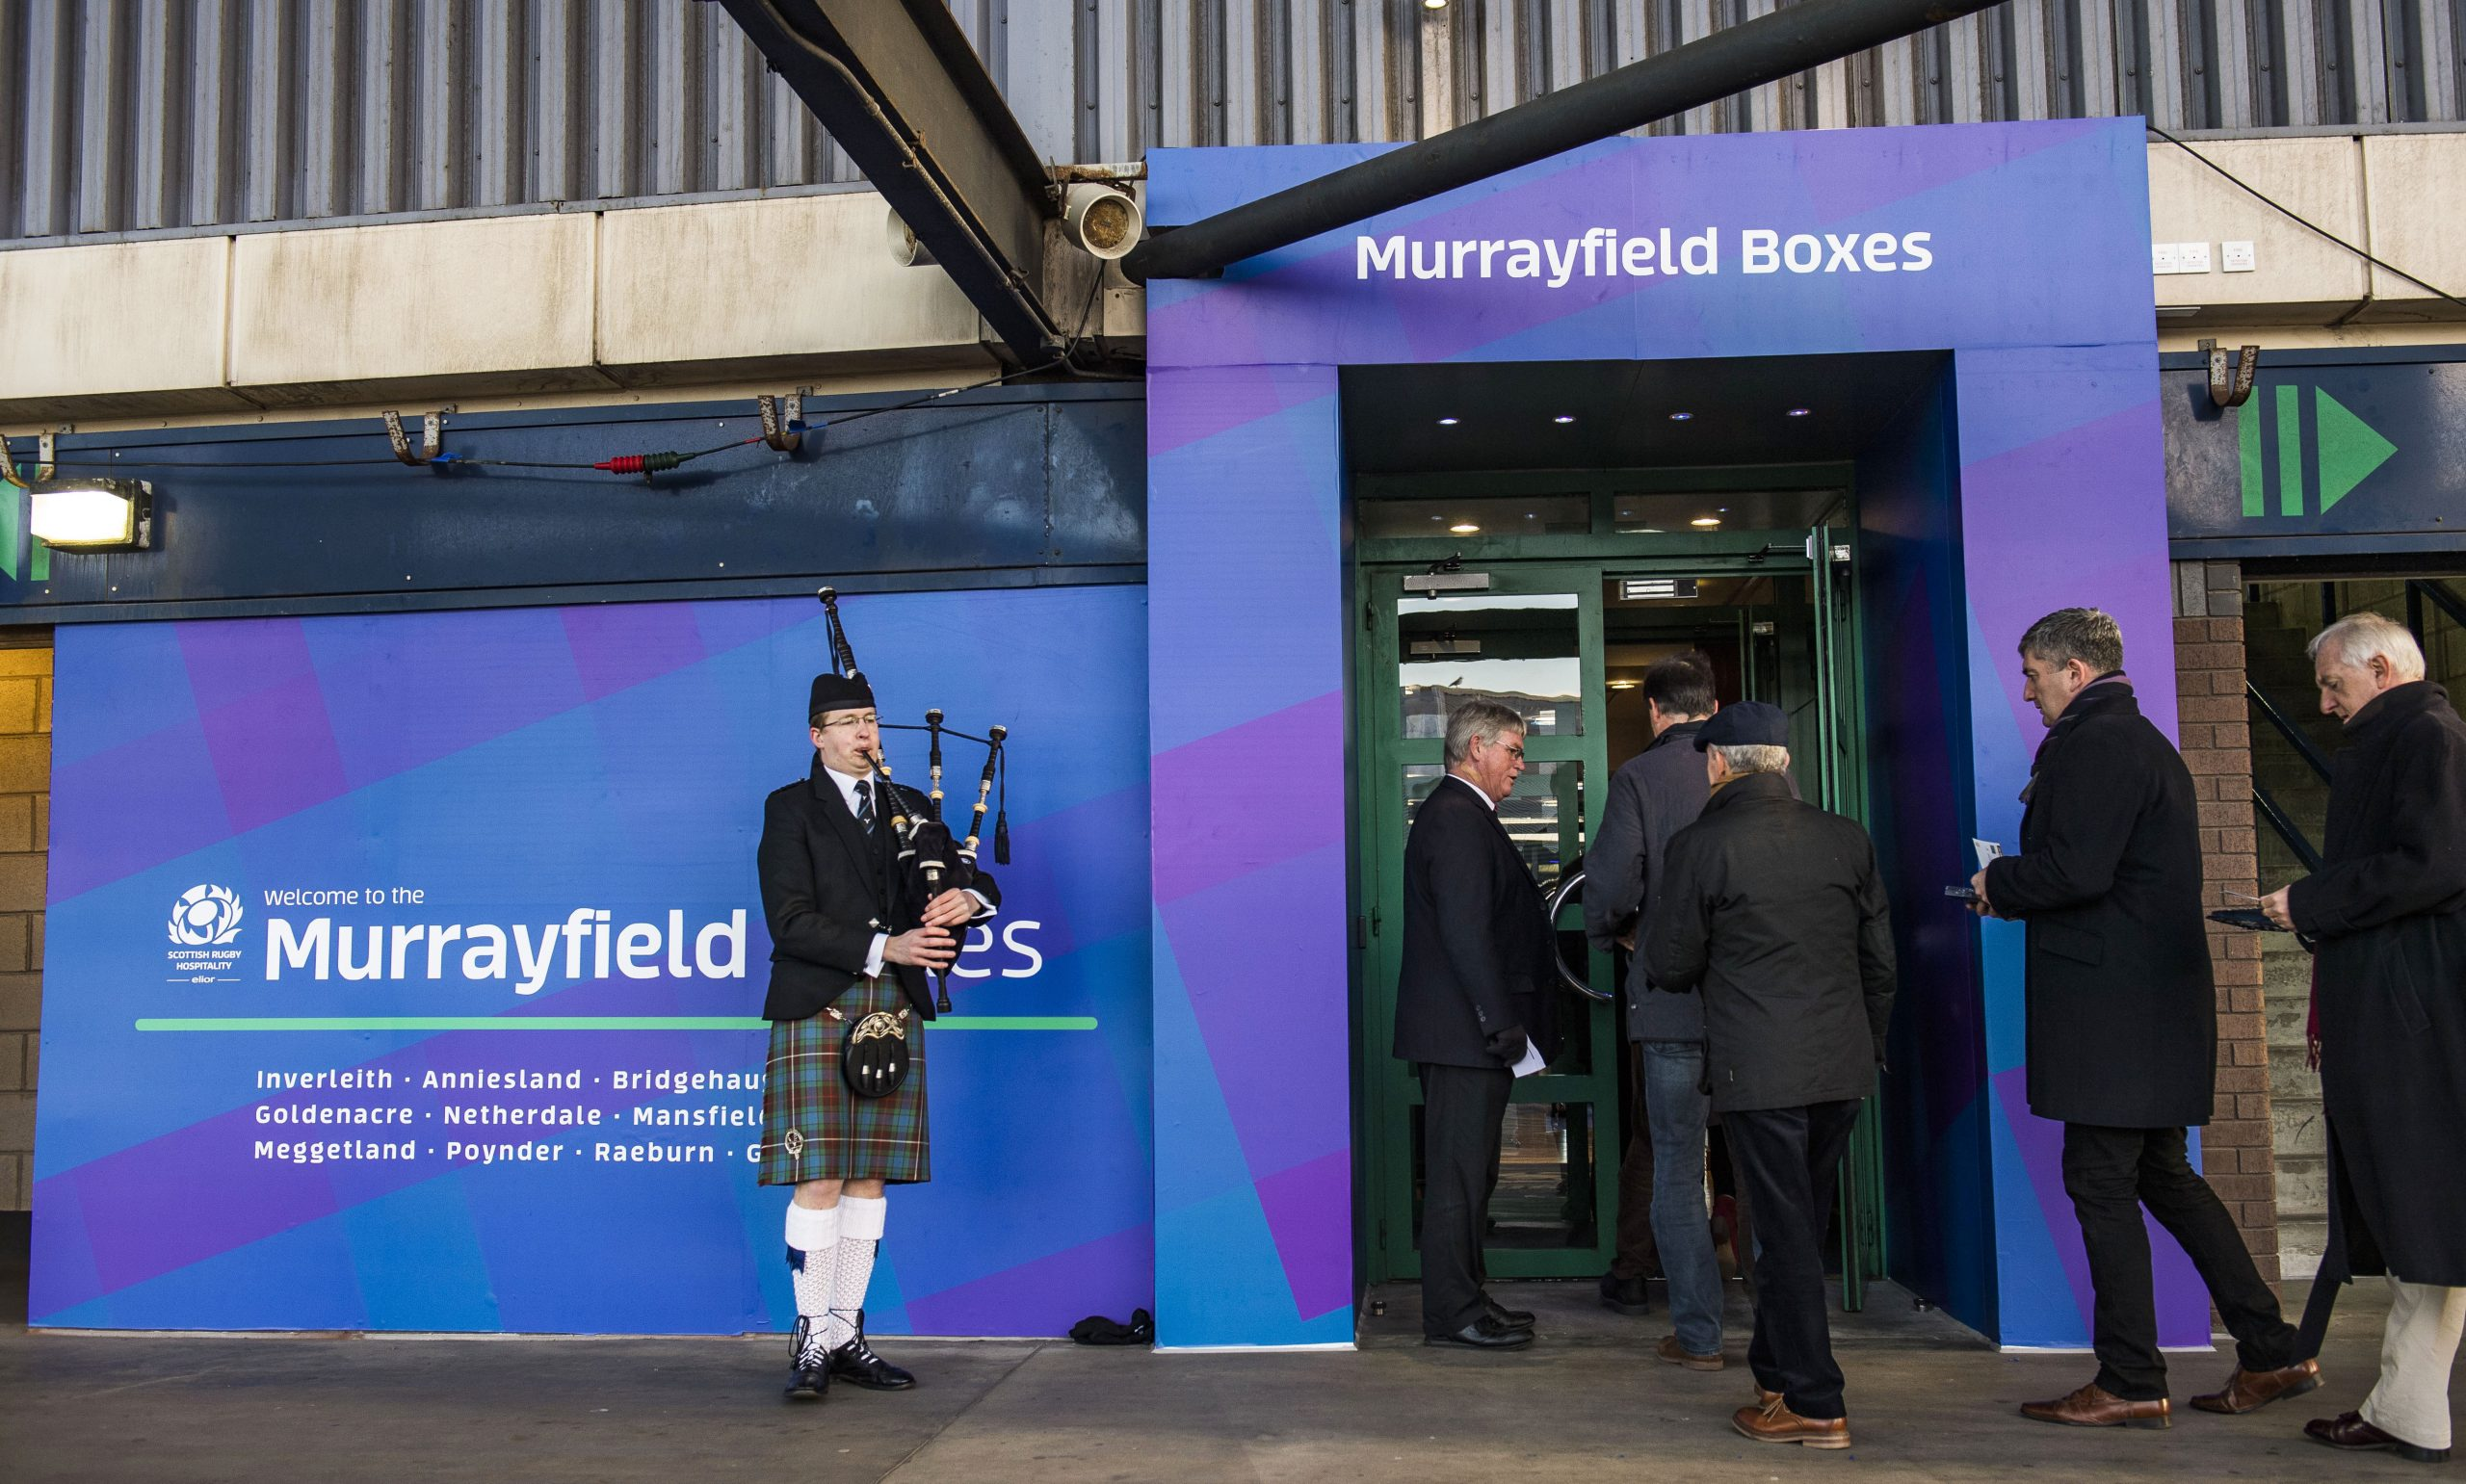 Murrayfield Boxes Entrances Piper